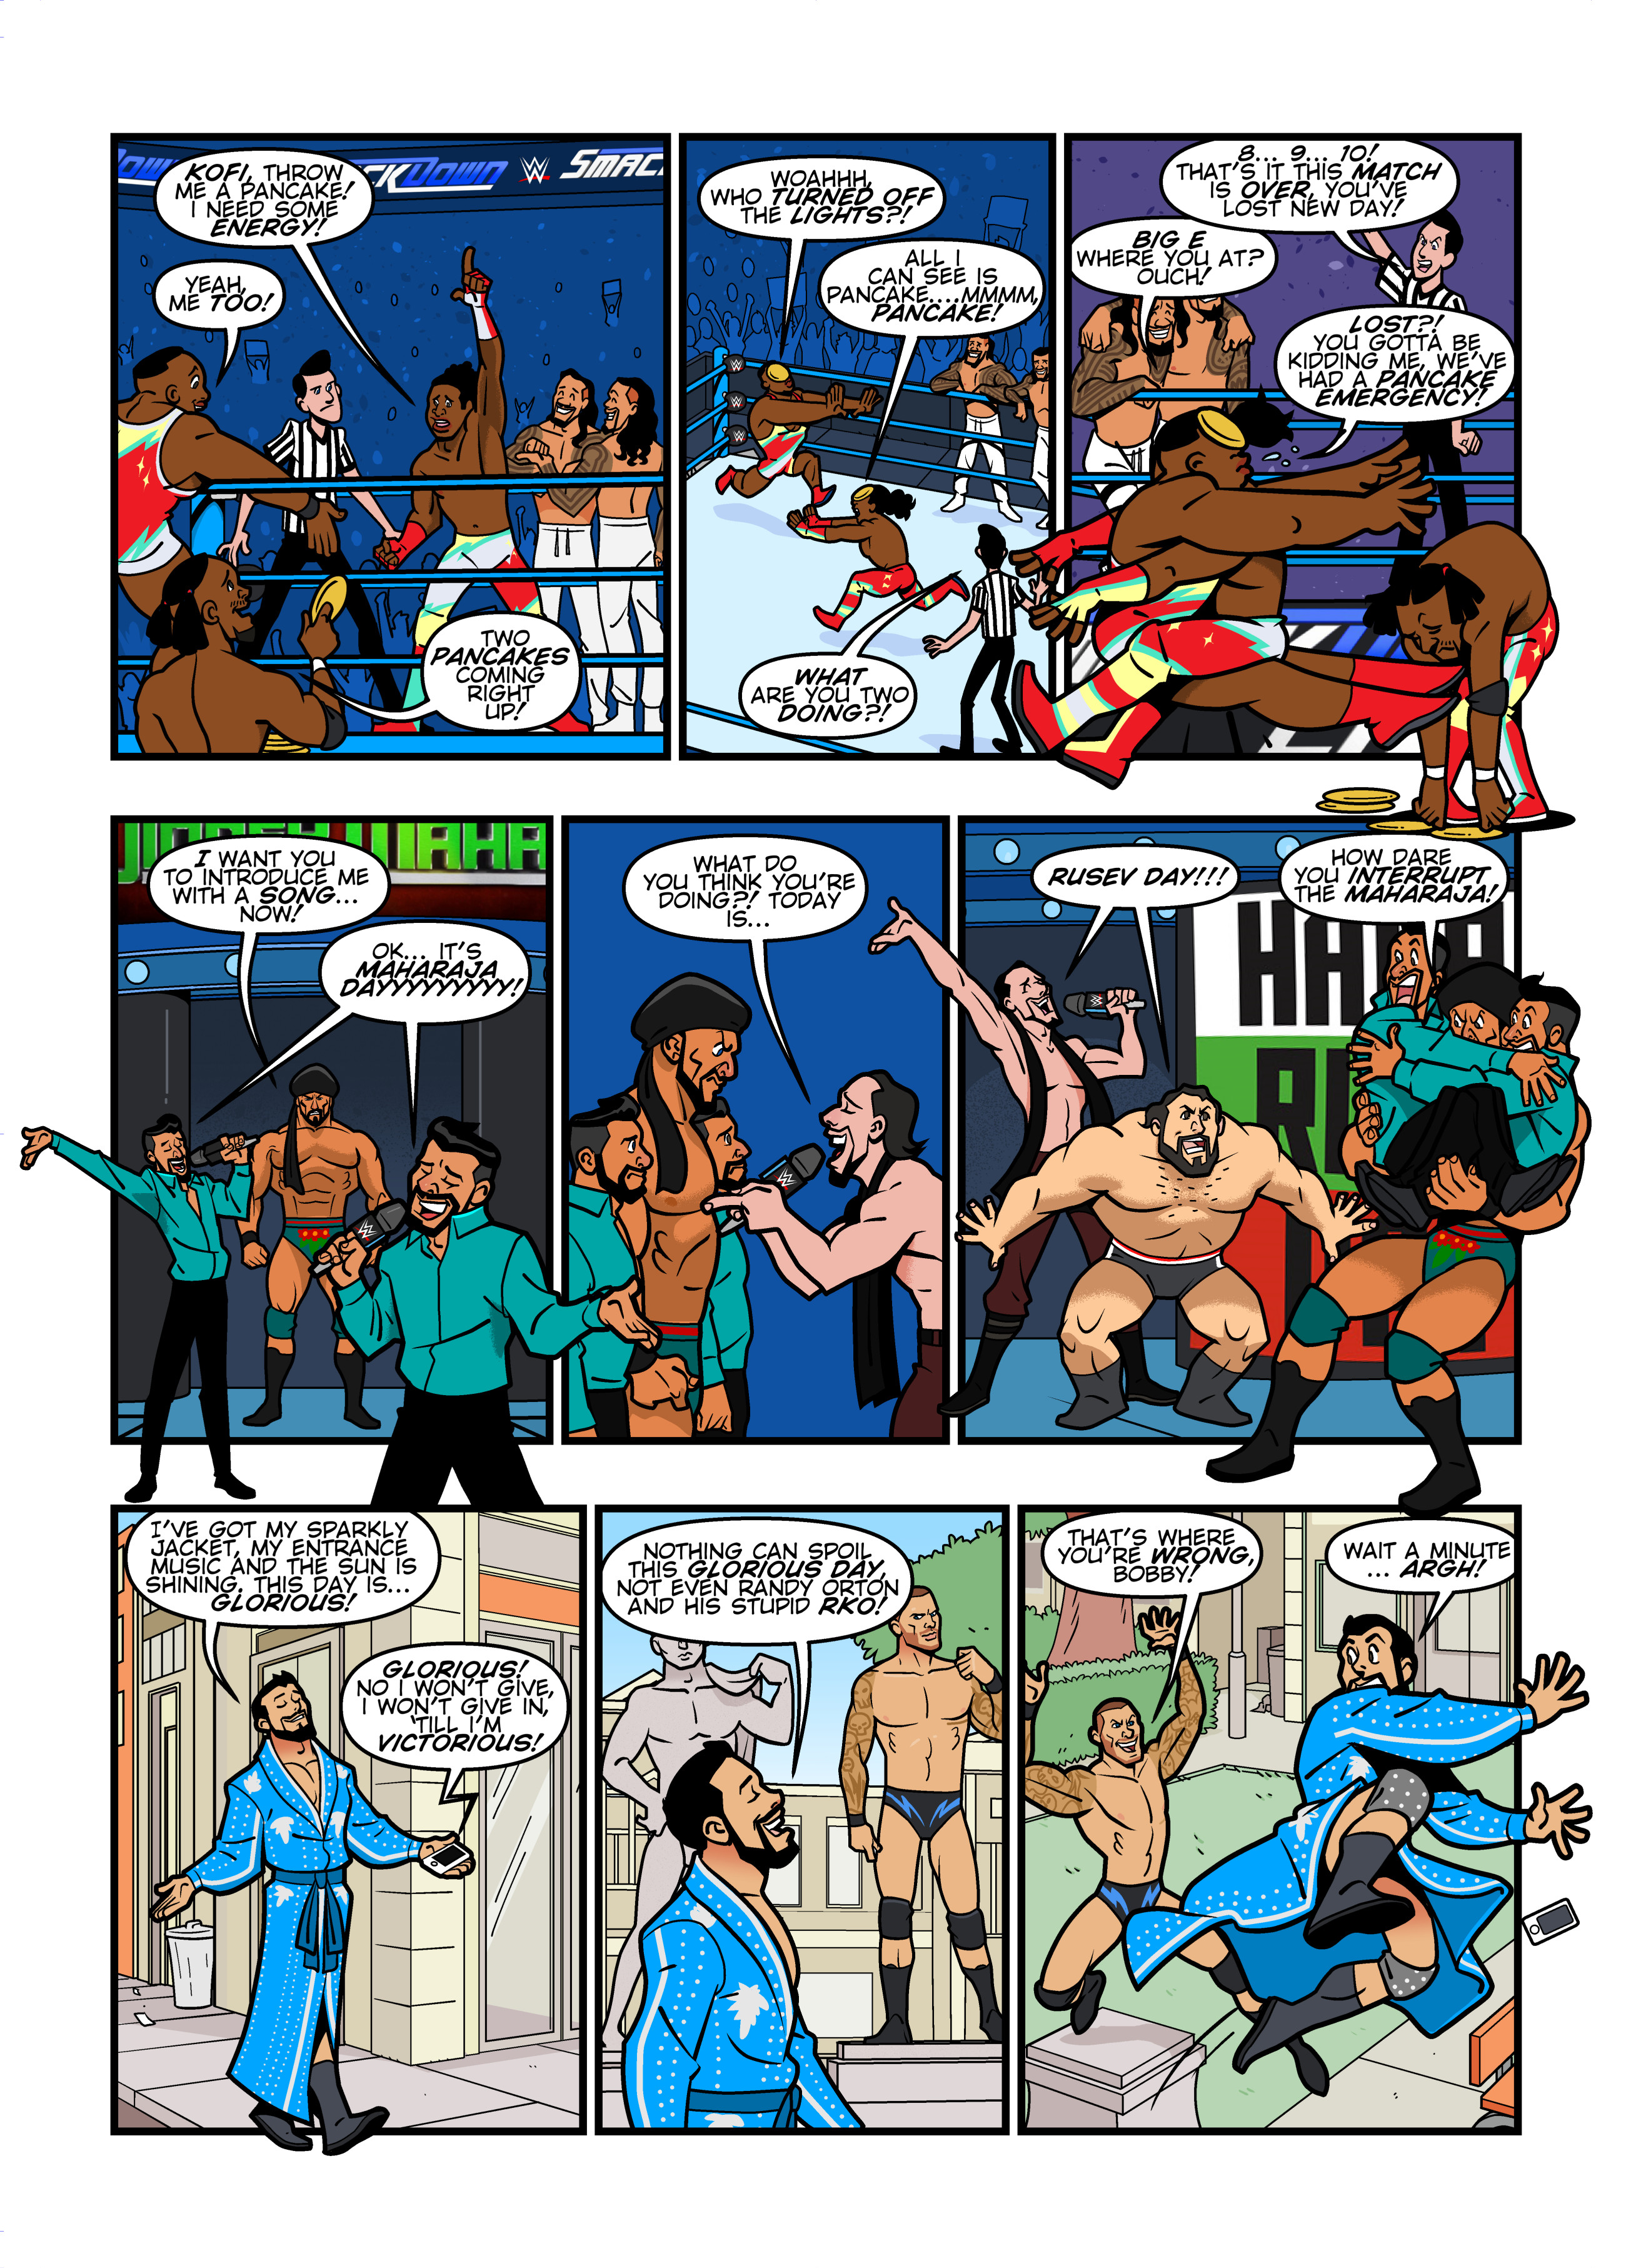 WWE Smackdown Live comic strips for WWE Kids Magazine #134